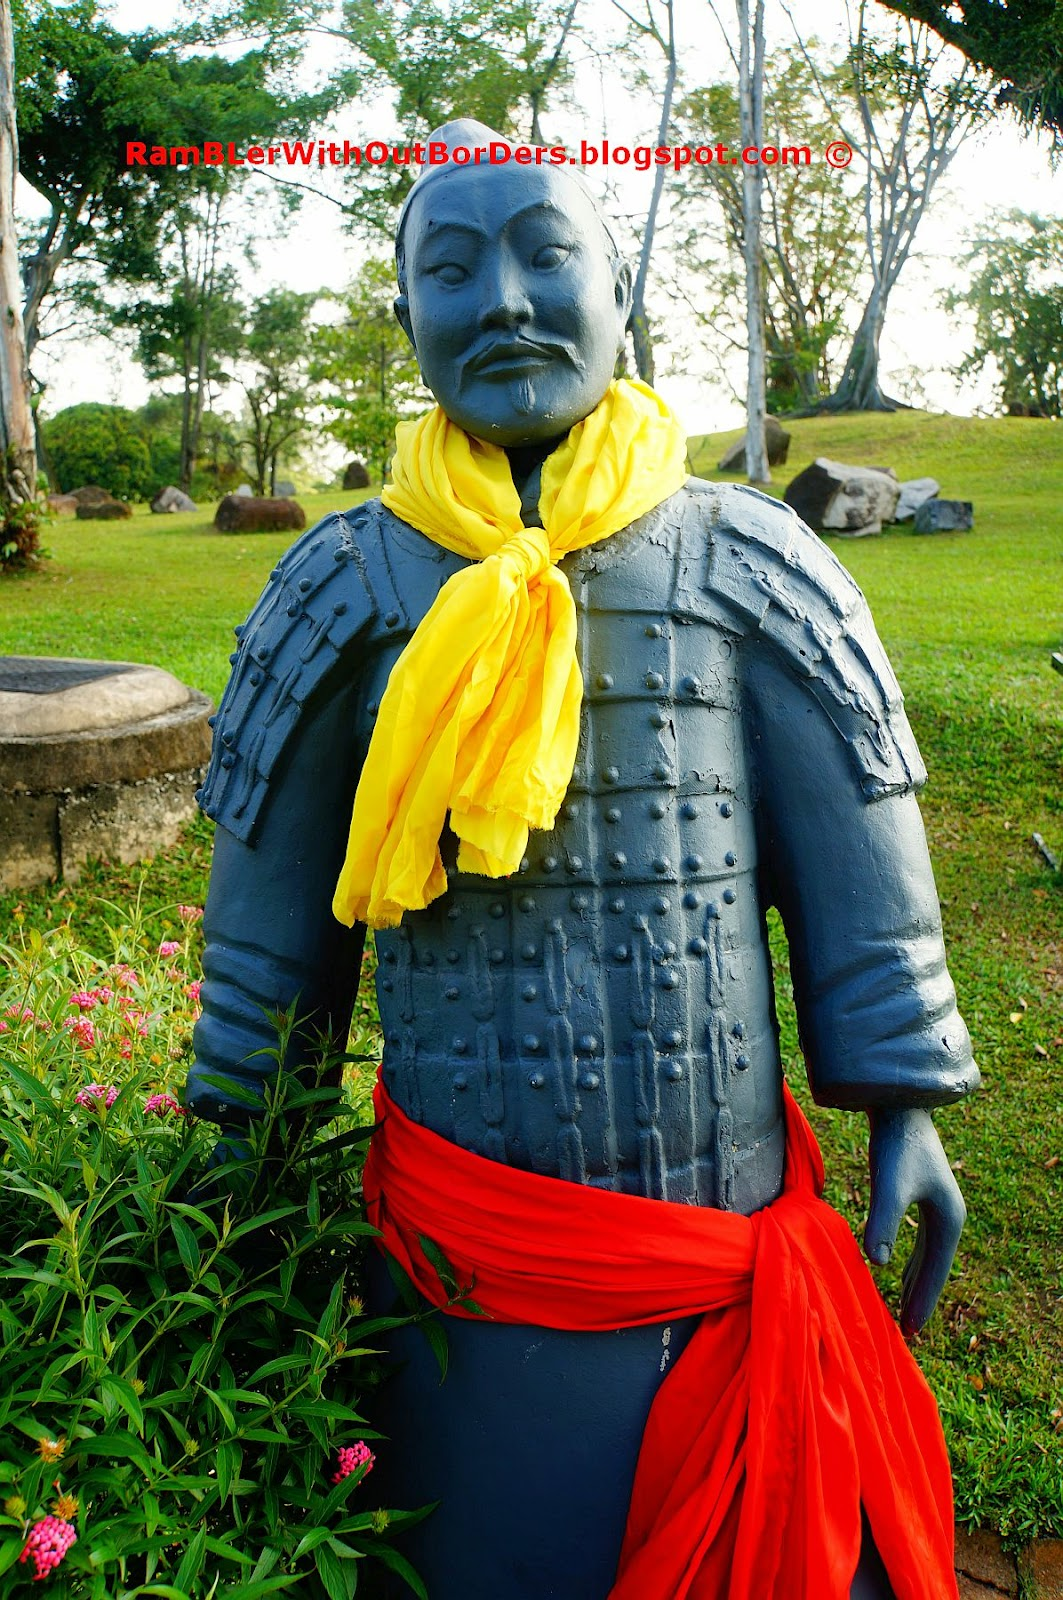 Replica of Xian entombed warrior